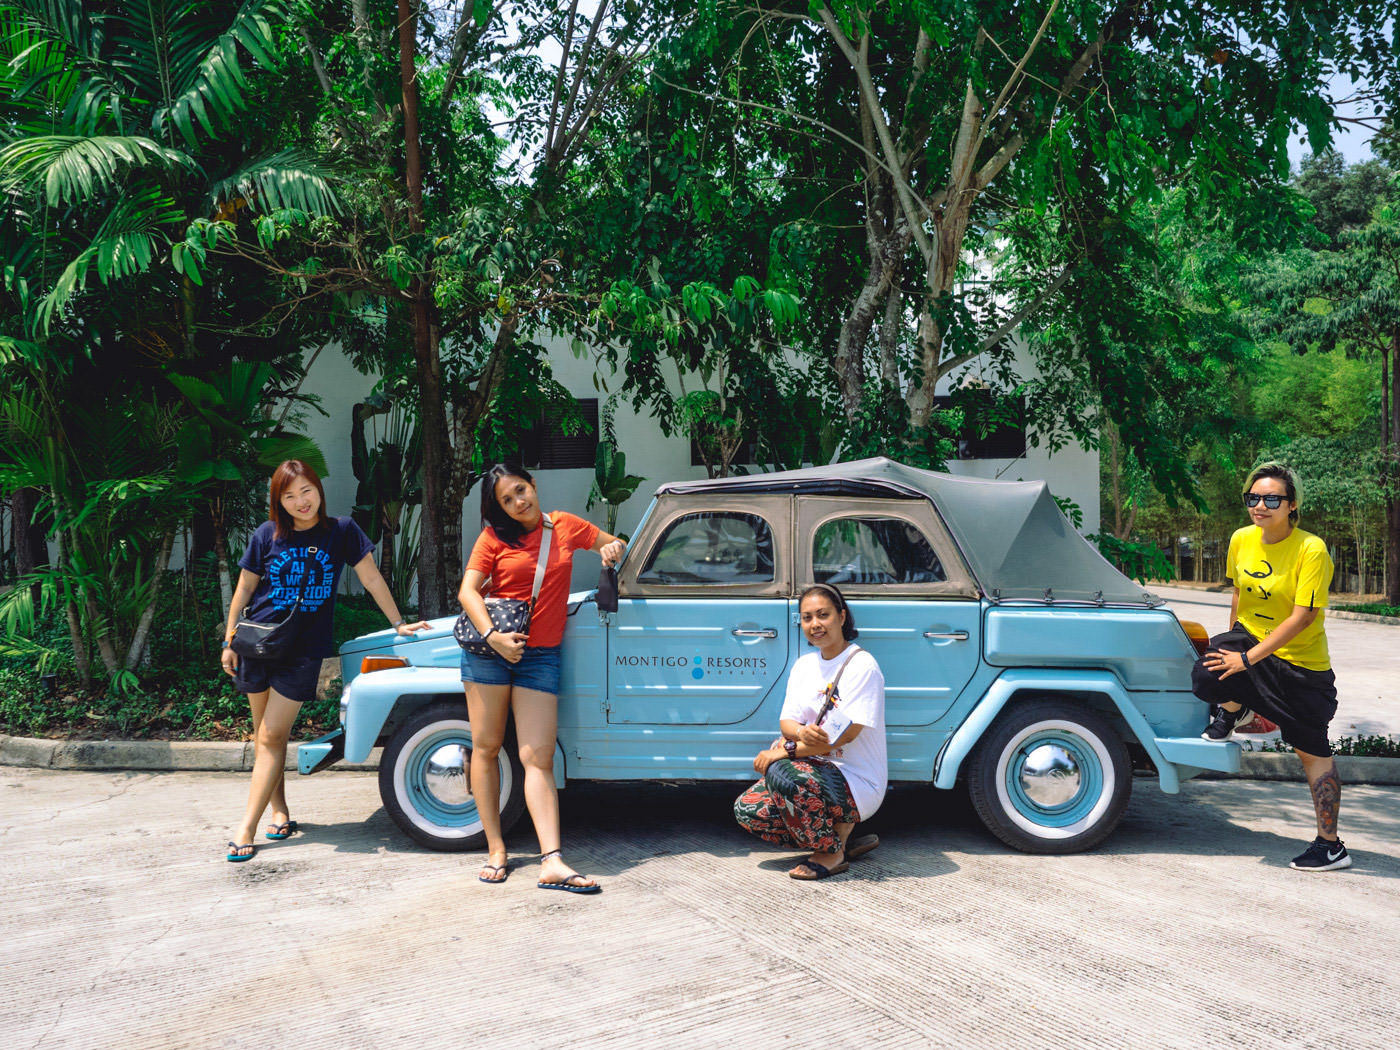 Indonesia - Montigo - Wefie on arrival with a vintage car